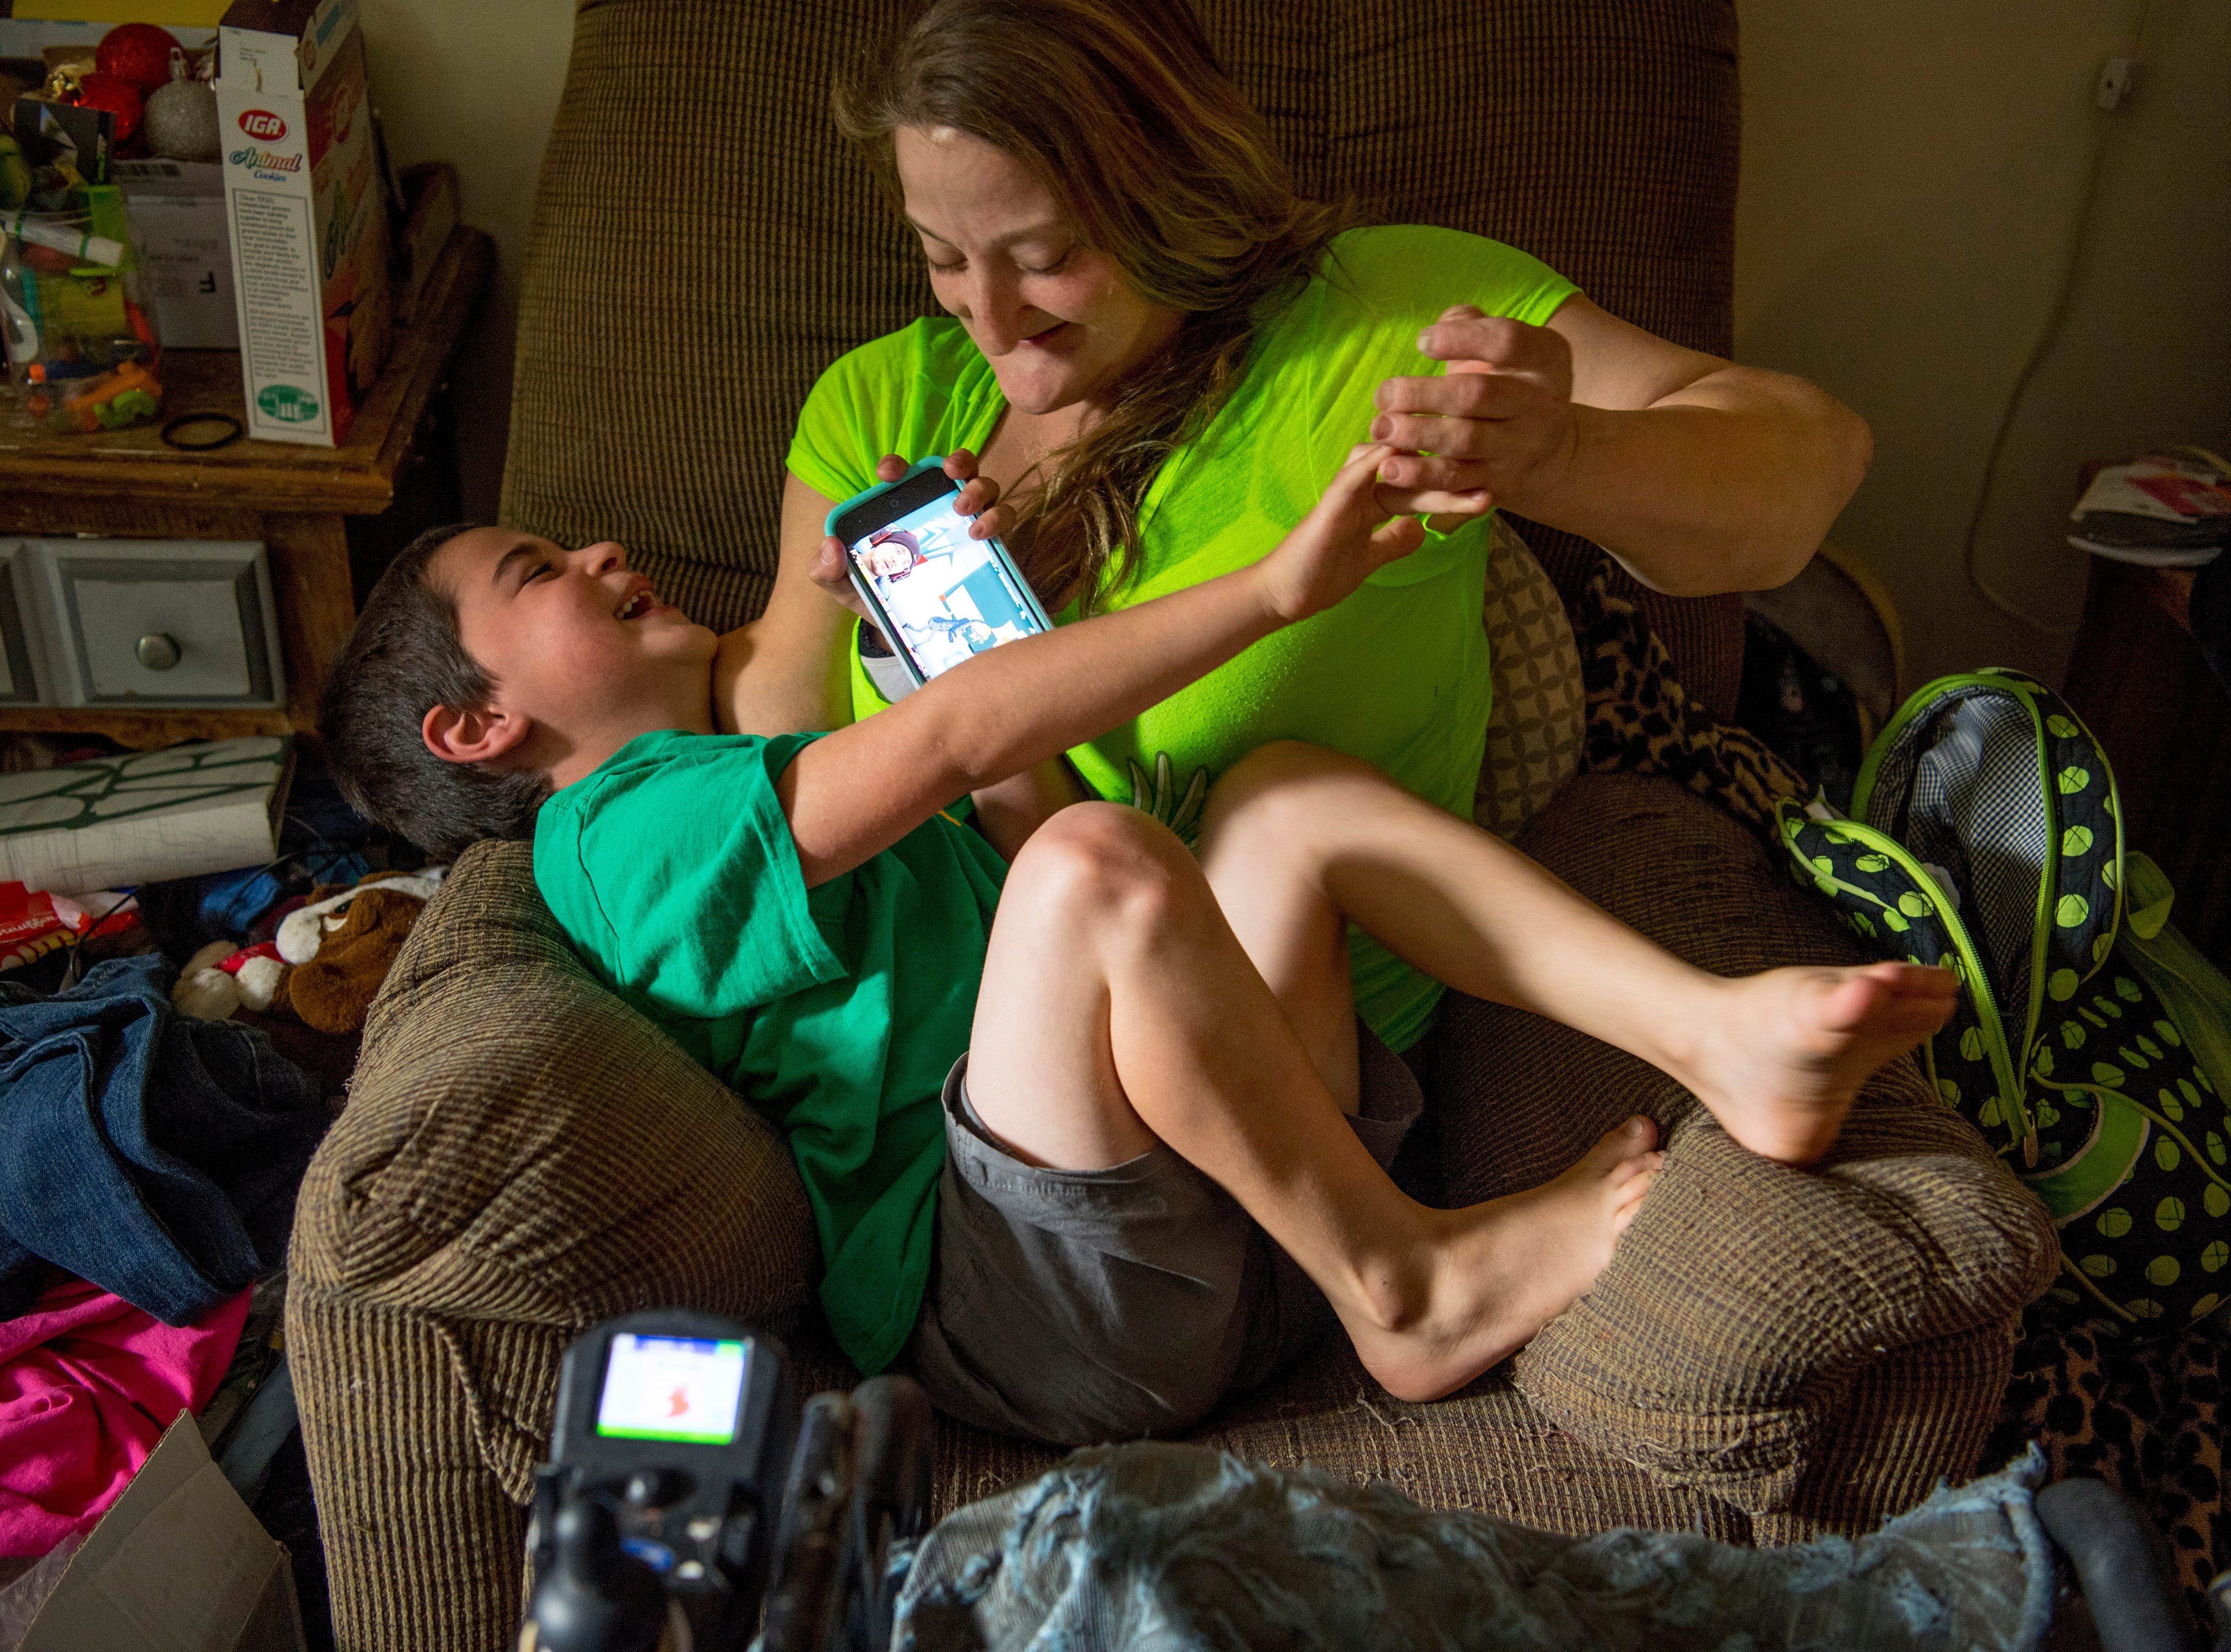 A tickle fight breaks out between Leland Smith, 6, and his mom, Amanda, as he tries to watch videos on her cell phone.